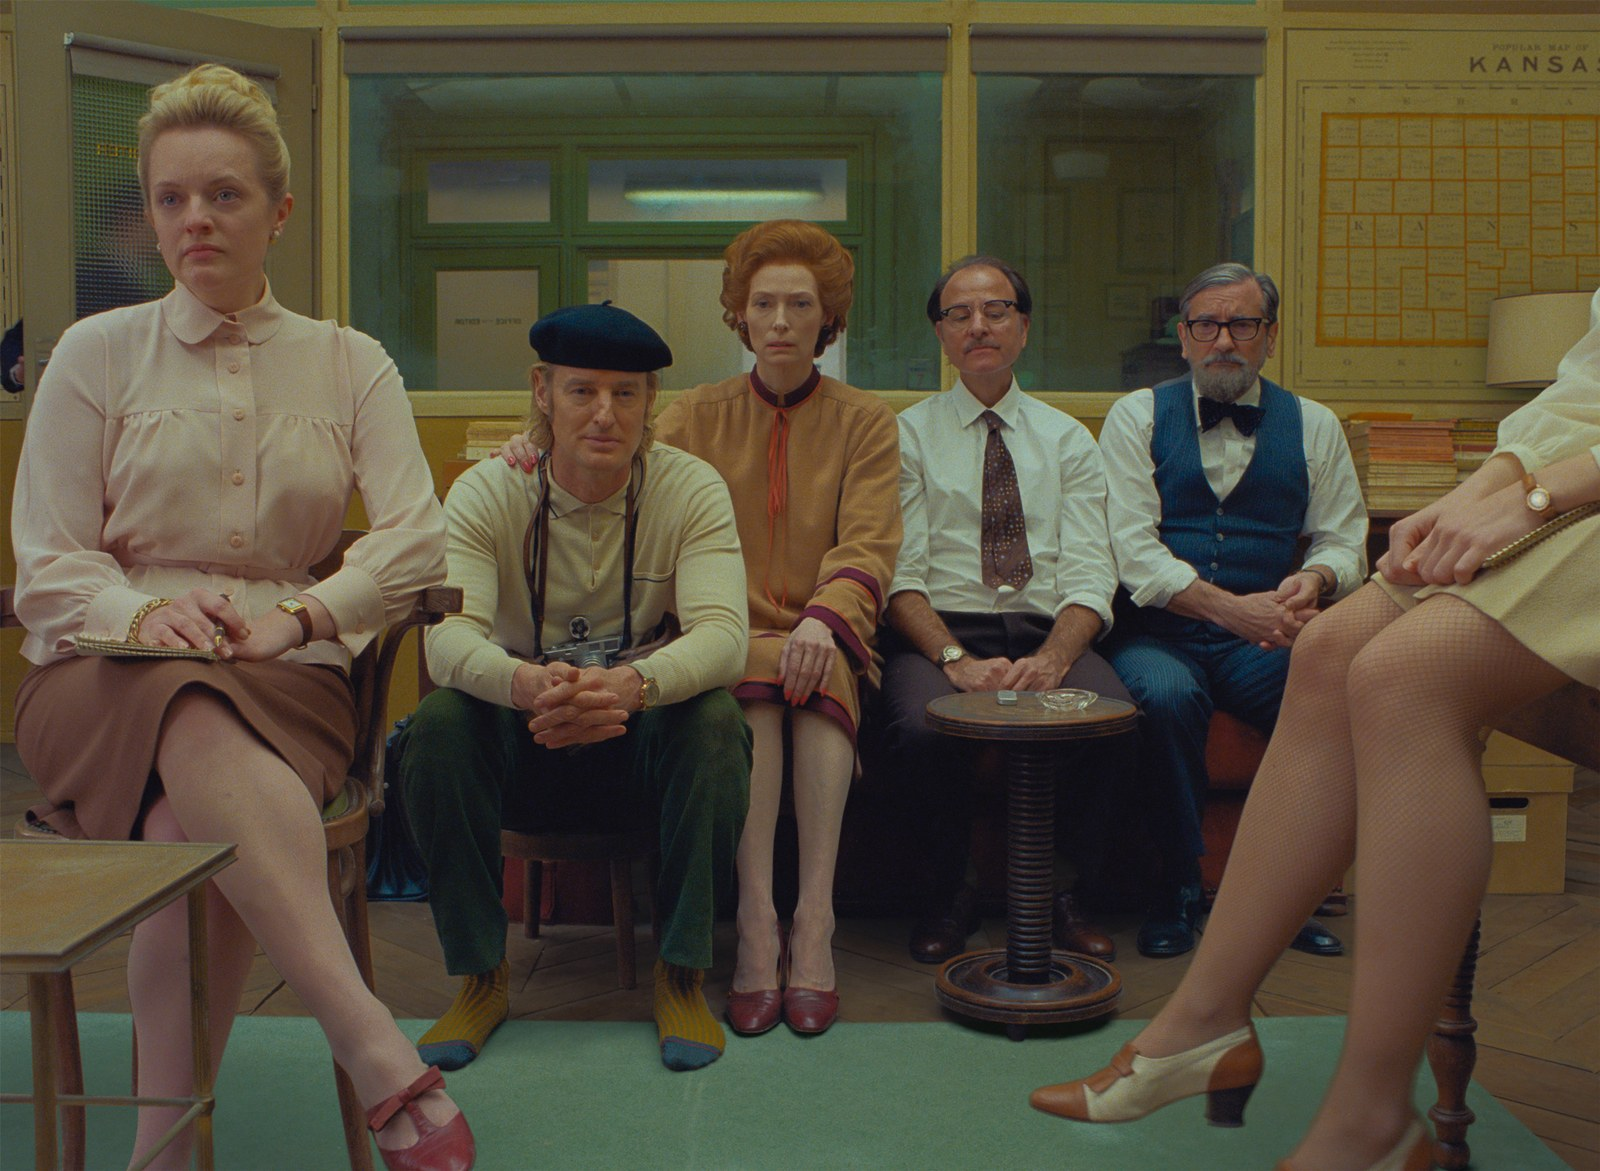 The Trailer For Wes Anderson's 'The French Dispatch' Is So Wes Andersony, We Can't Wait For It! - GoodTimes: Lifestyle, Food, Travel, Fashion, Weddings, Bollywood, Tech, Videos & Photos